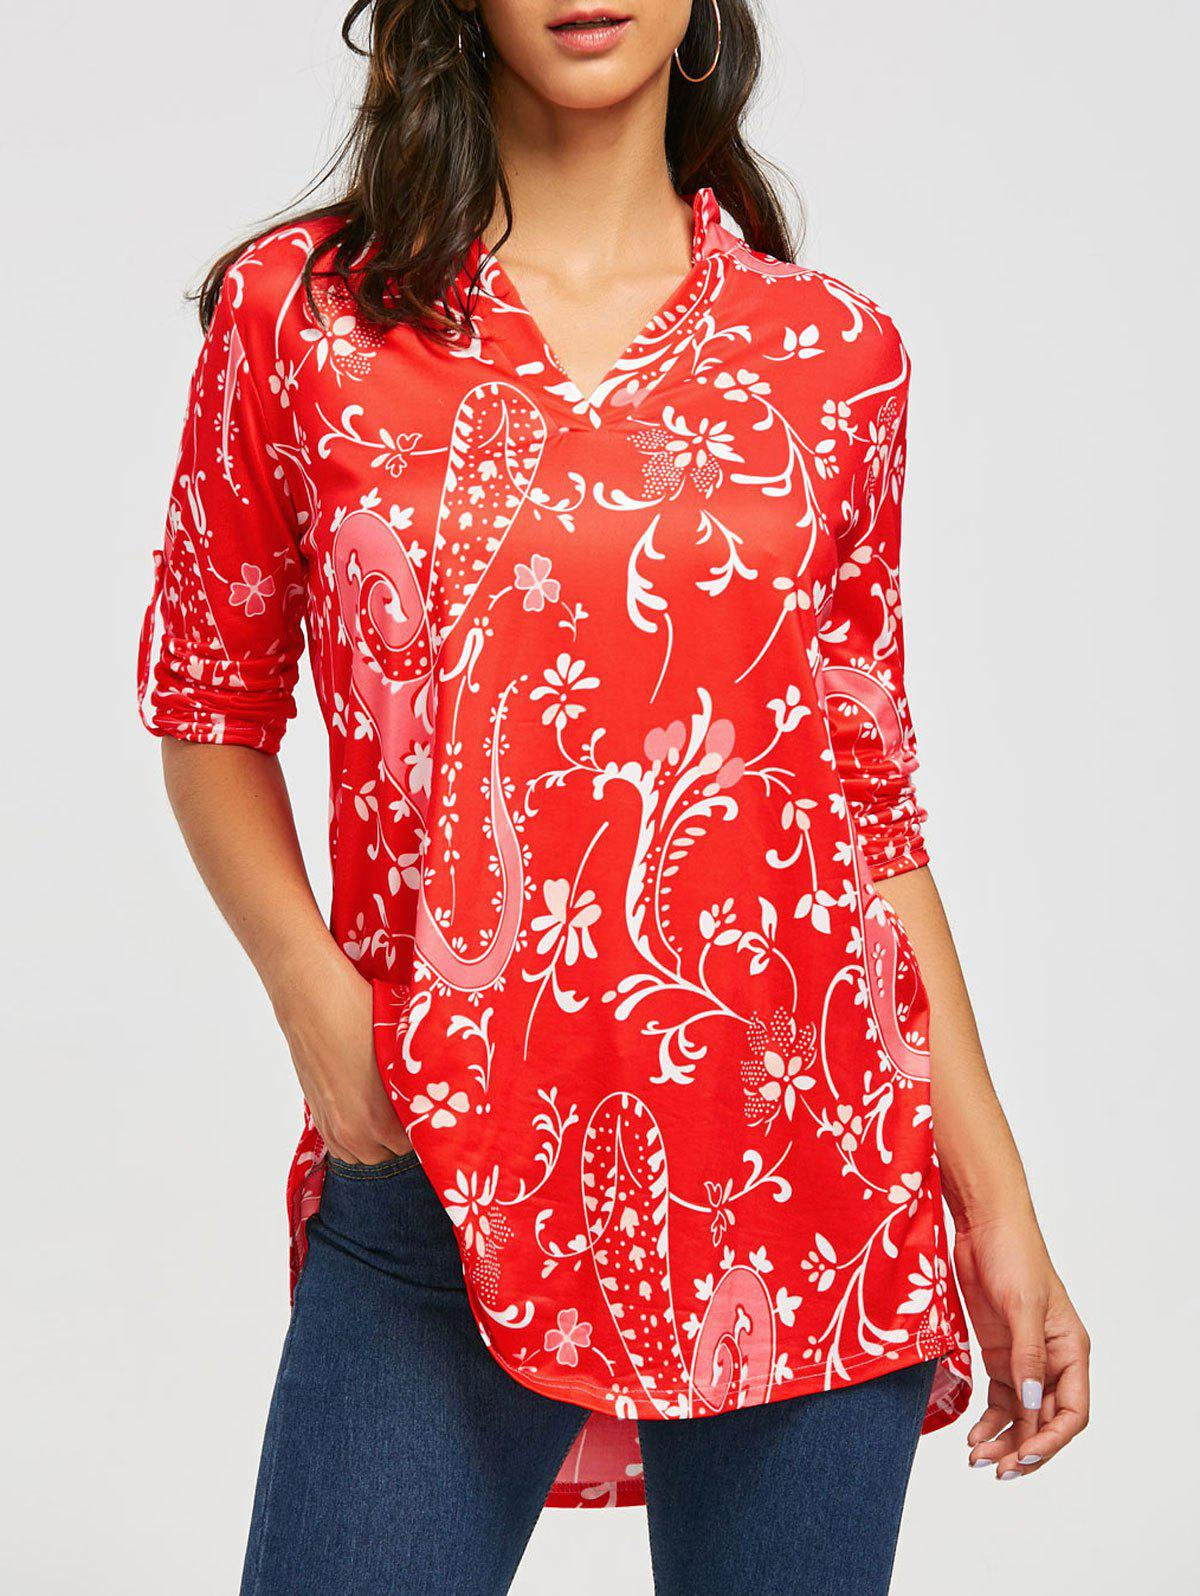 Bohemian Print V-neck BlouseWOMEN<br><br>Size: XL; Color: RED; Style: Bohemian; Material: Polyester,Spandex; Shirt Length: Long; Sleeve Length: Three Quarter; Collar: V-Neck; Pattern Type: Print; Season: Fall,Spring; Weight: 0.2700kg; Package Contents: 1 x Blouse;